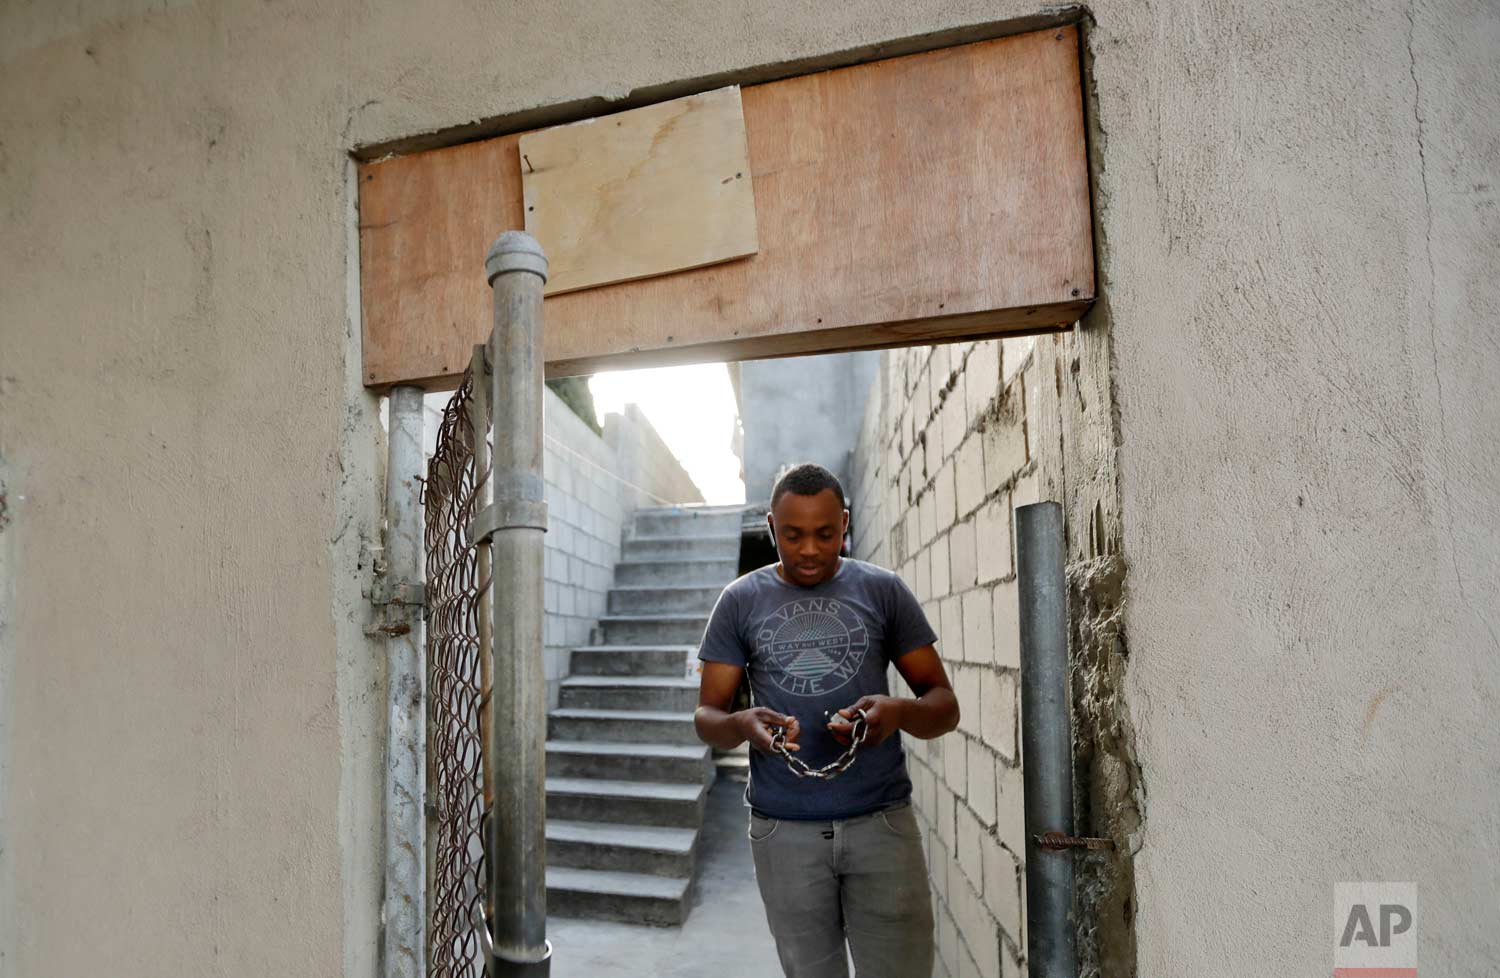 In this June 6, 2017 photo, Abelson Etienne holds the lock to his apartment in Tijuana, Mexico. (AP Photo/Gregory Bull)